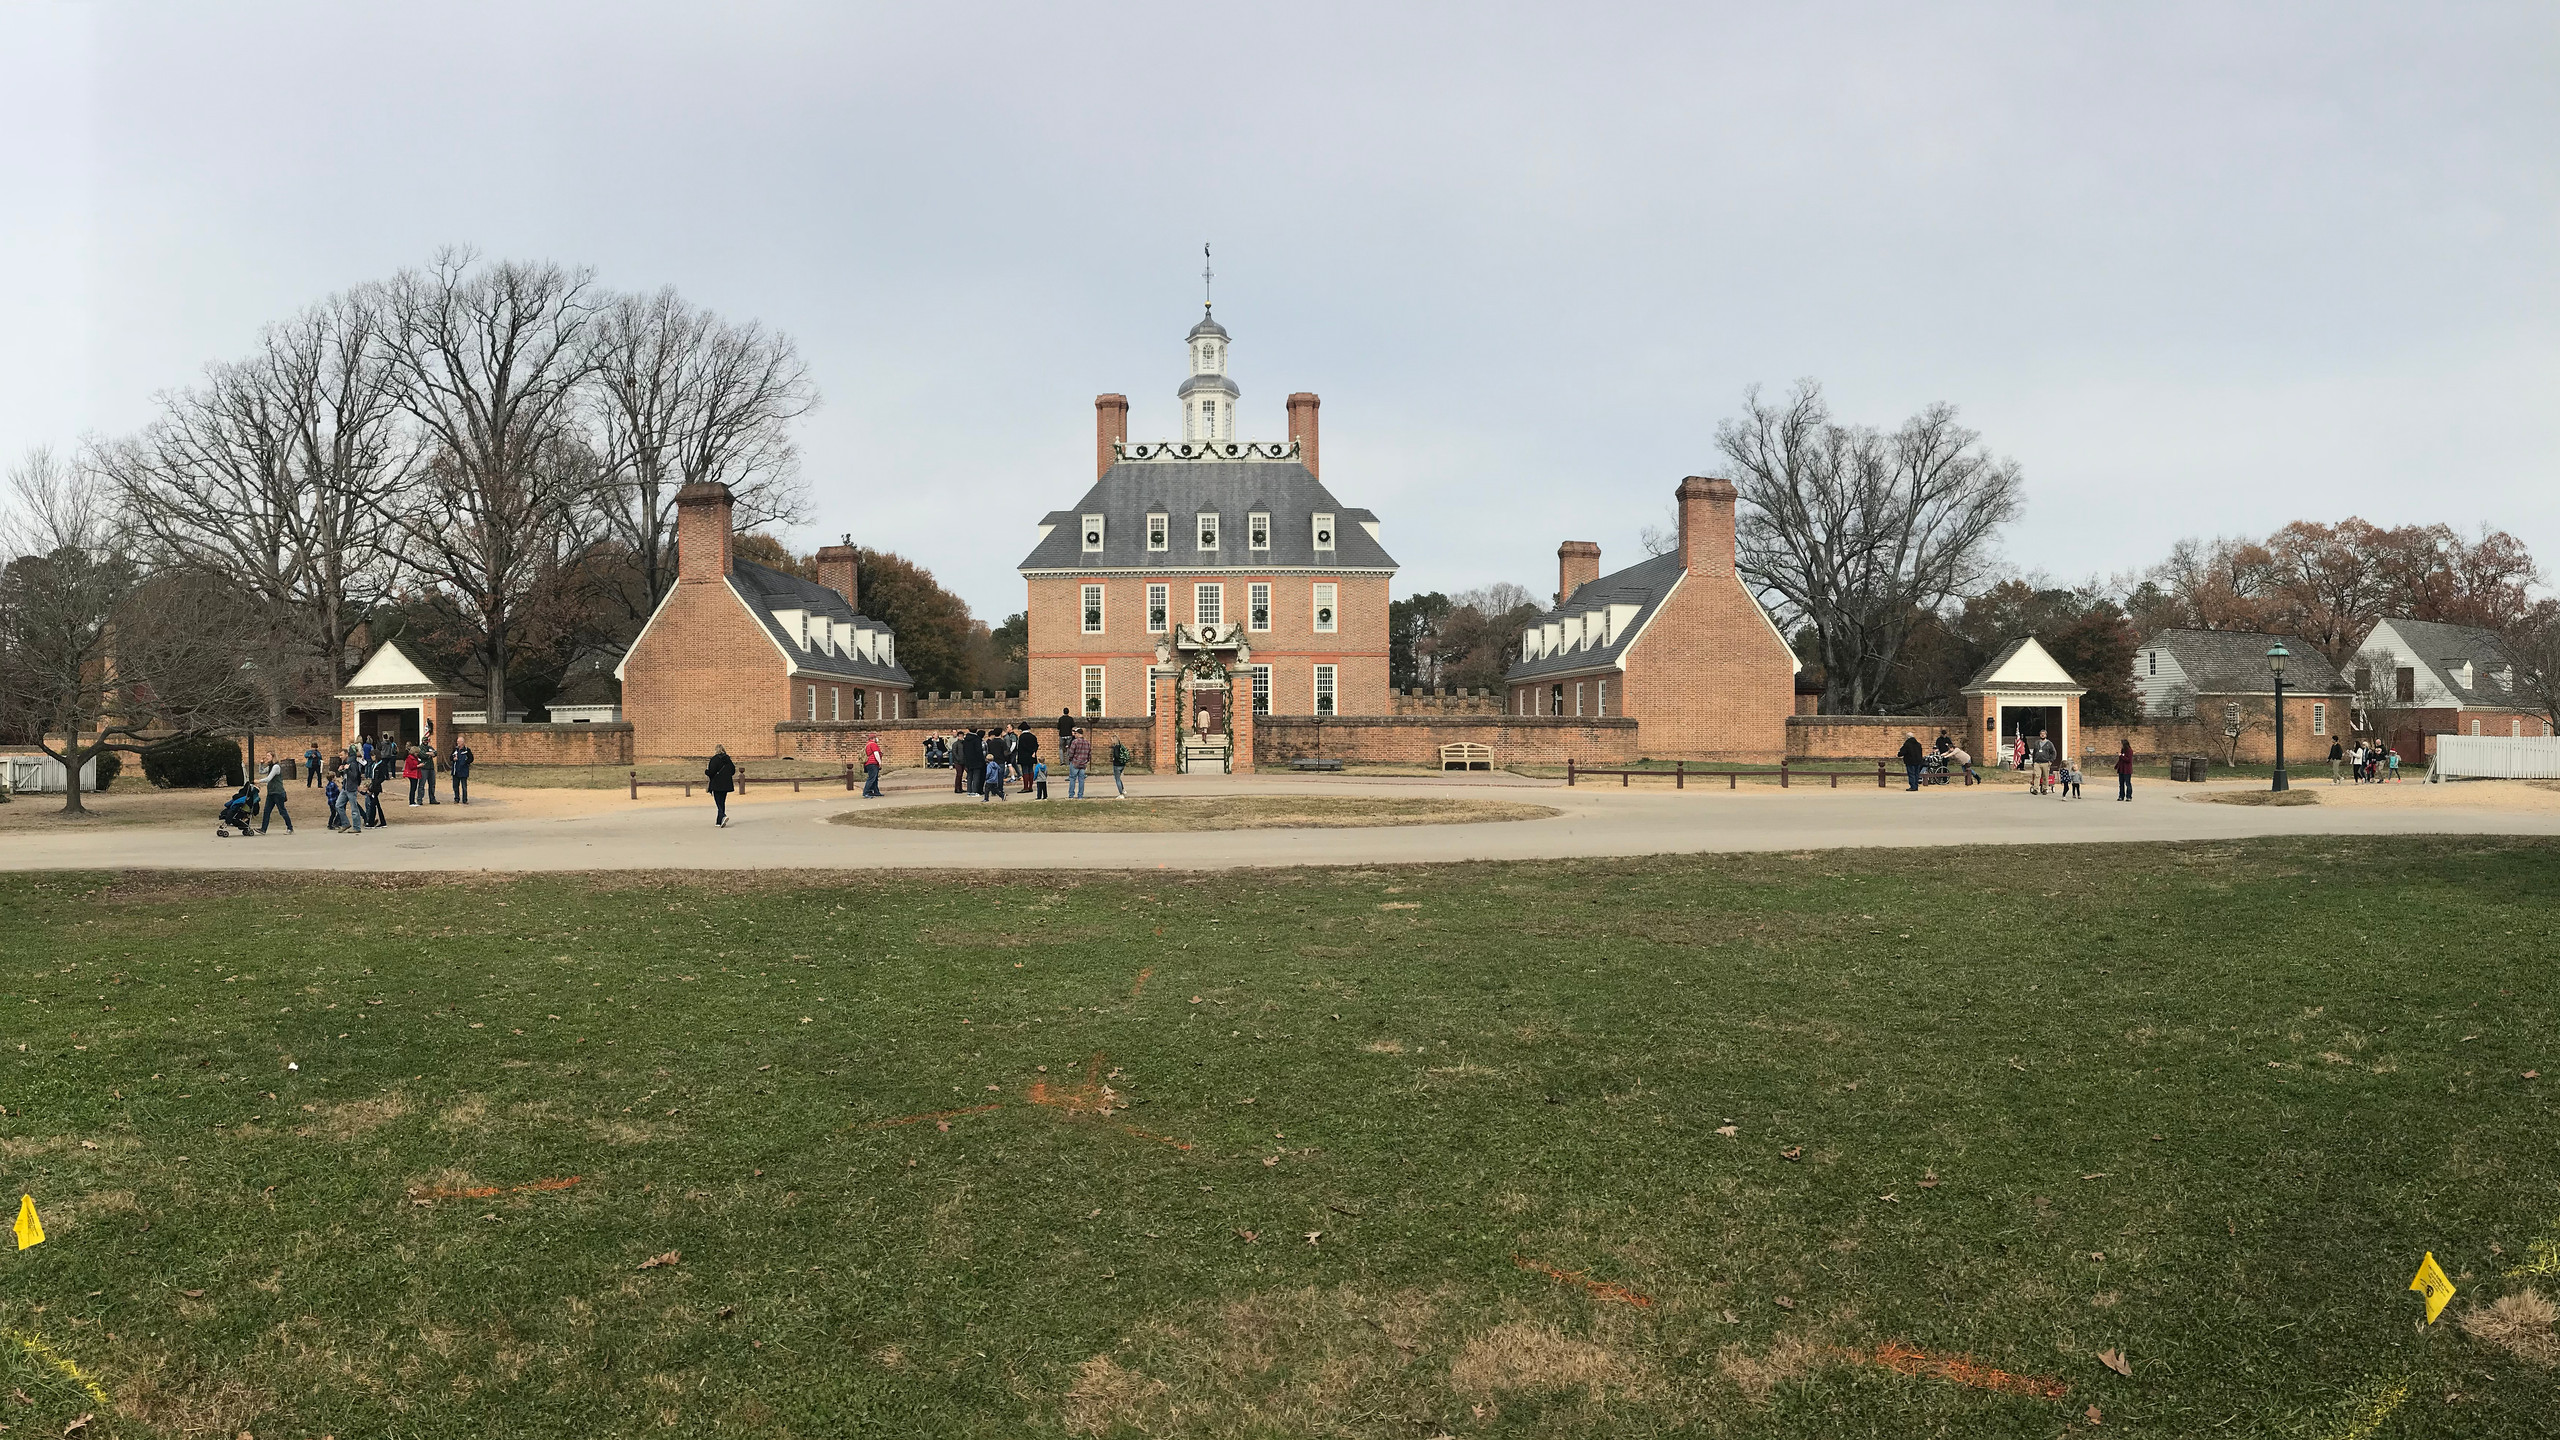 Panorama of the Governor's Palace